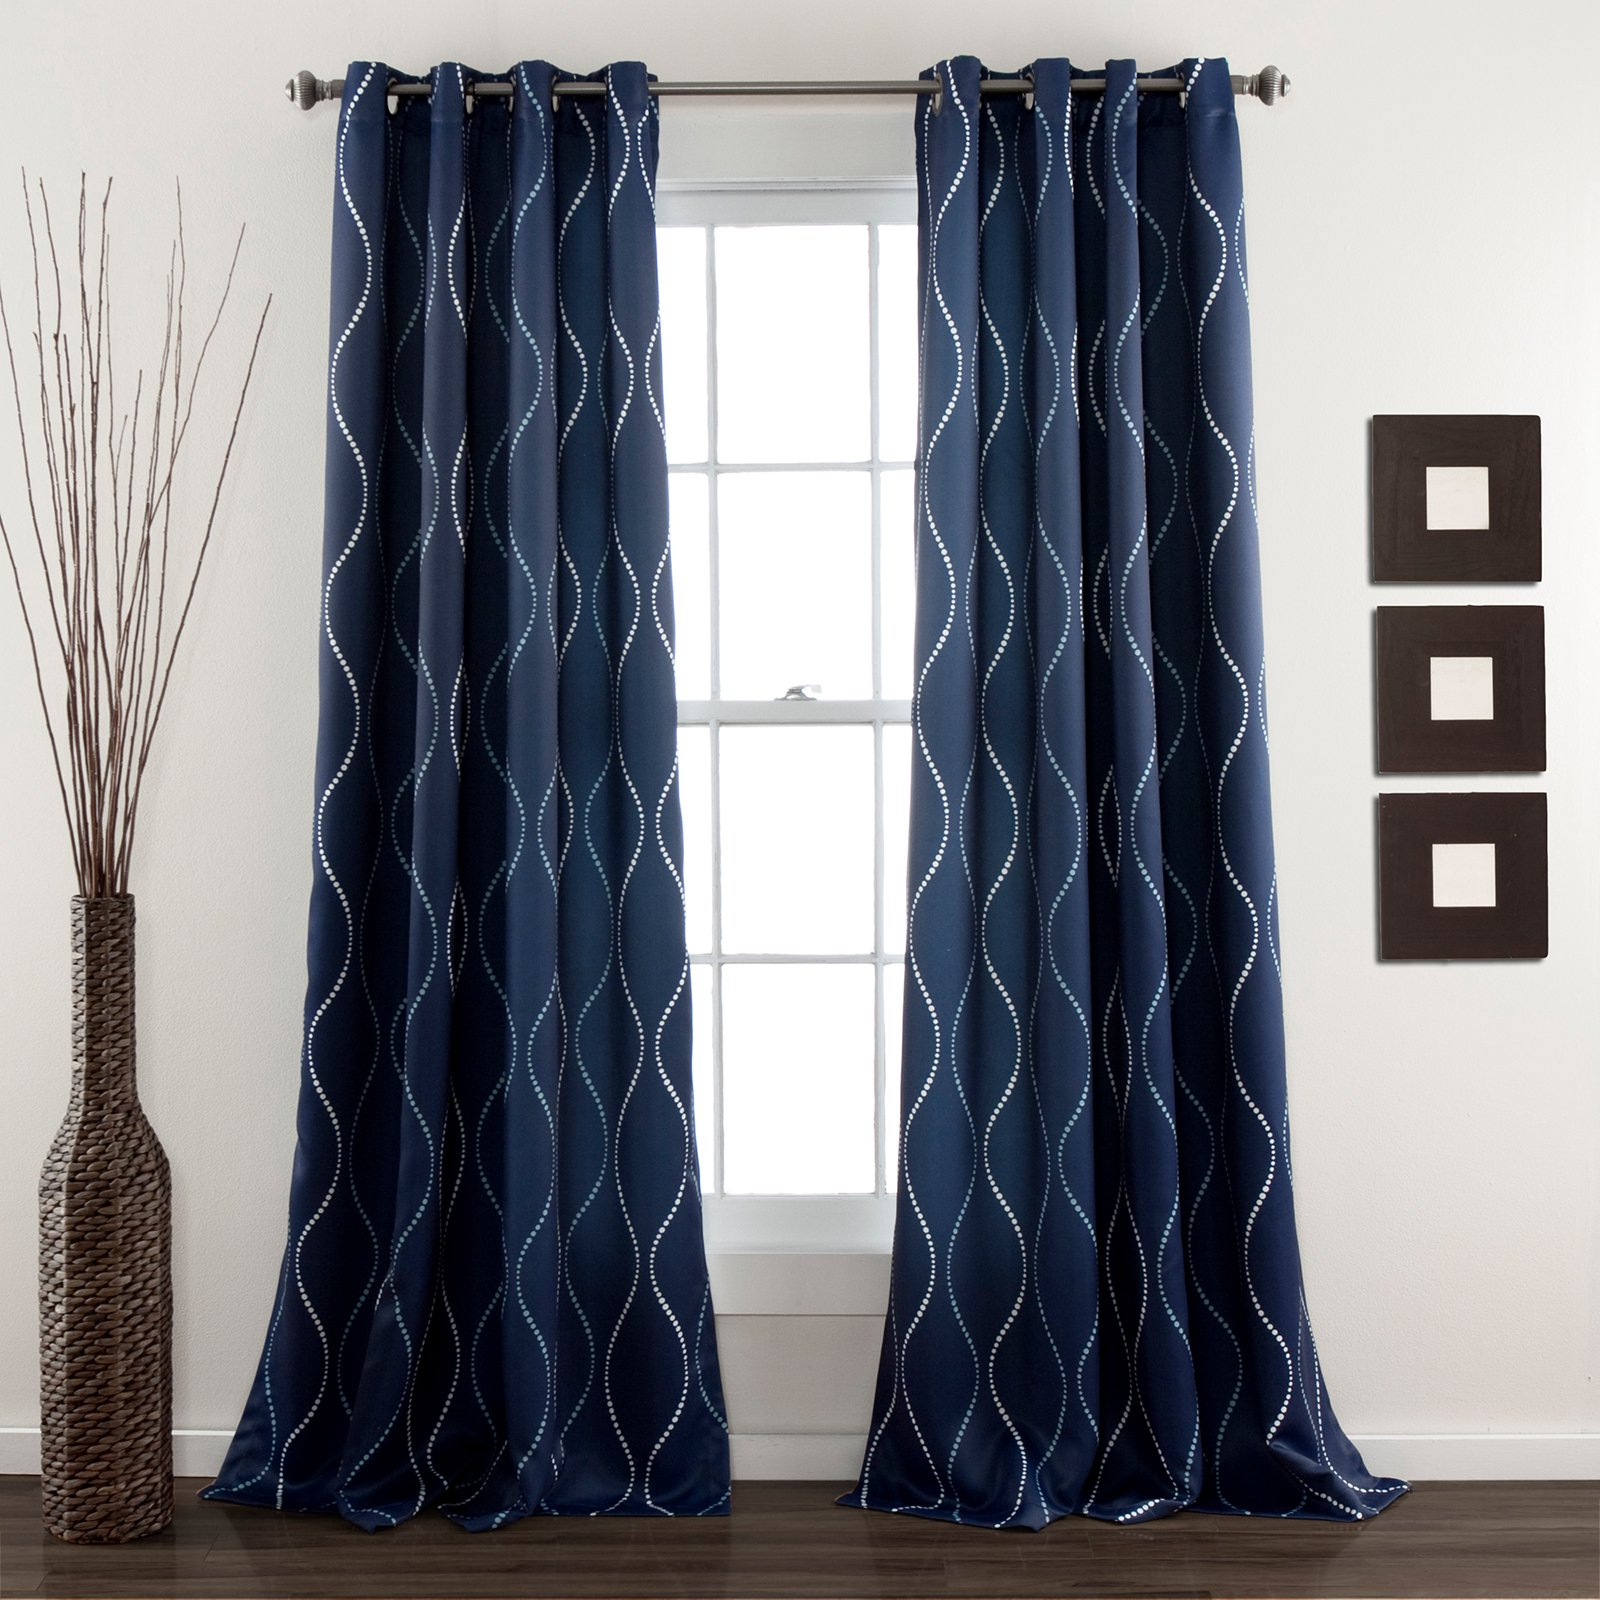 Dark Blue And Grey Curtains Swirl Window Curtains Set